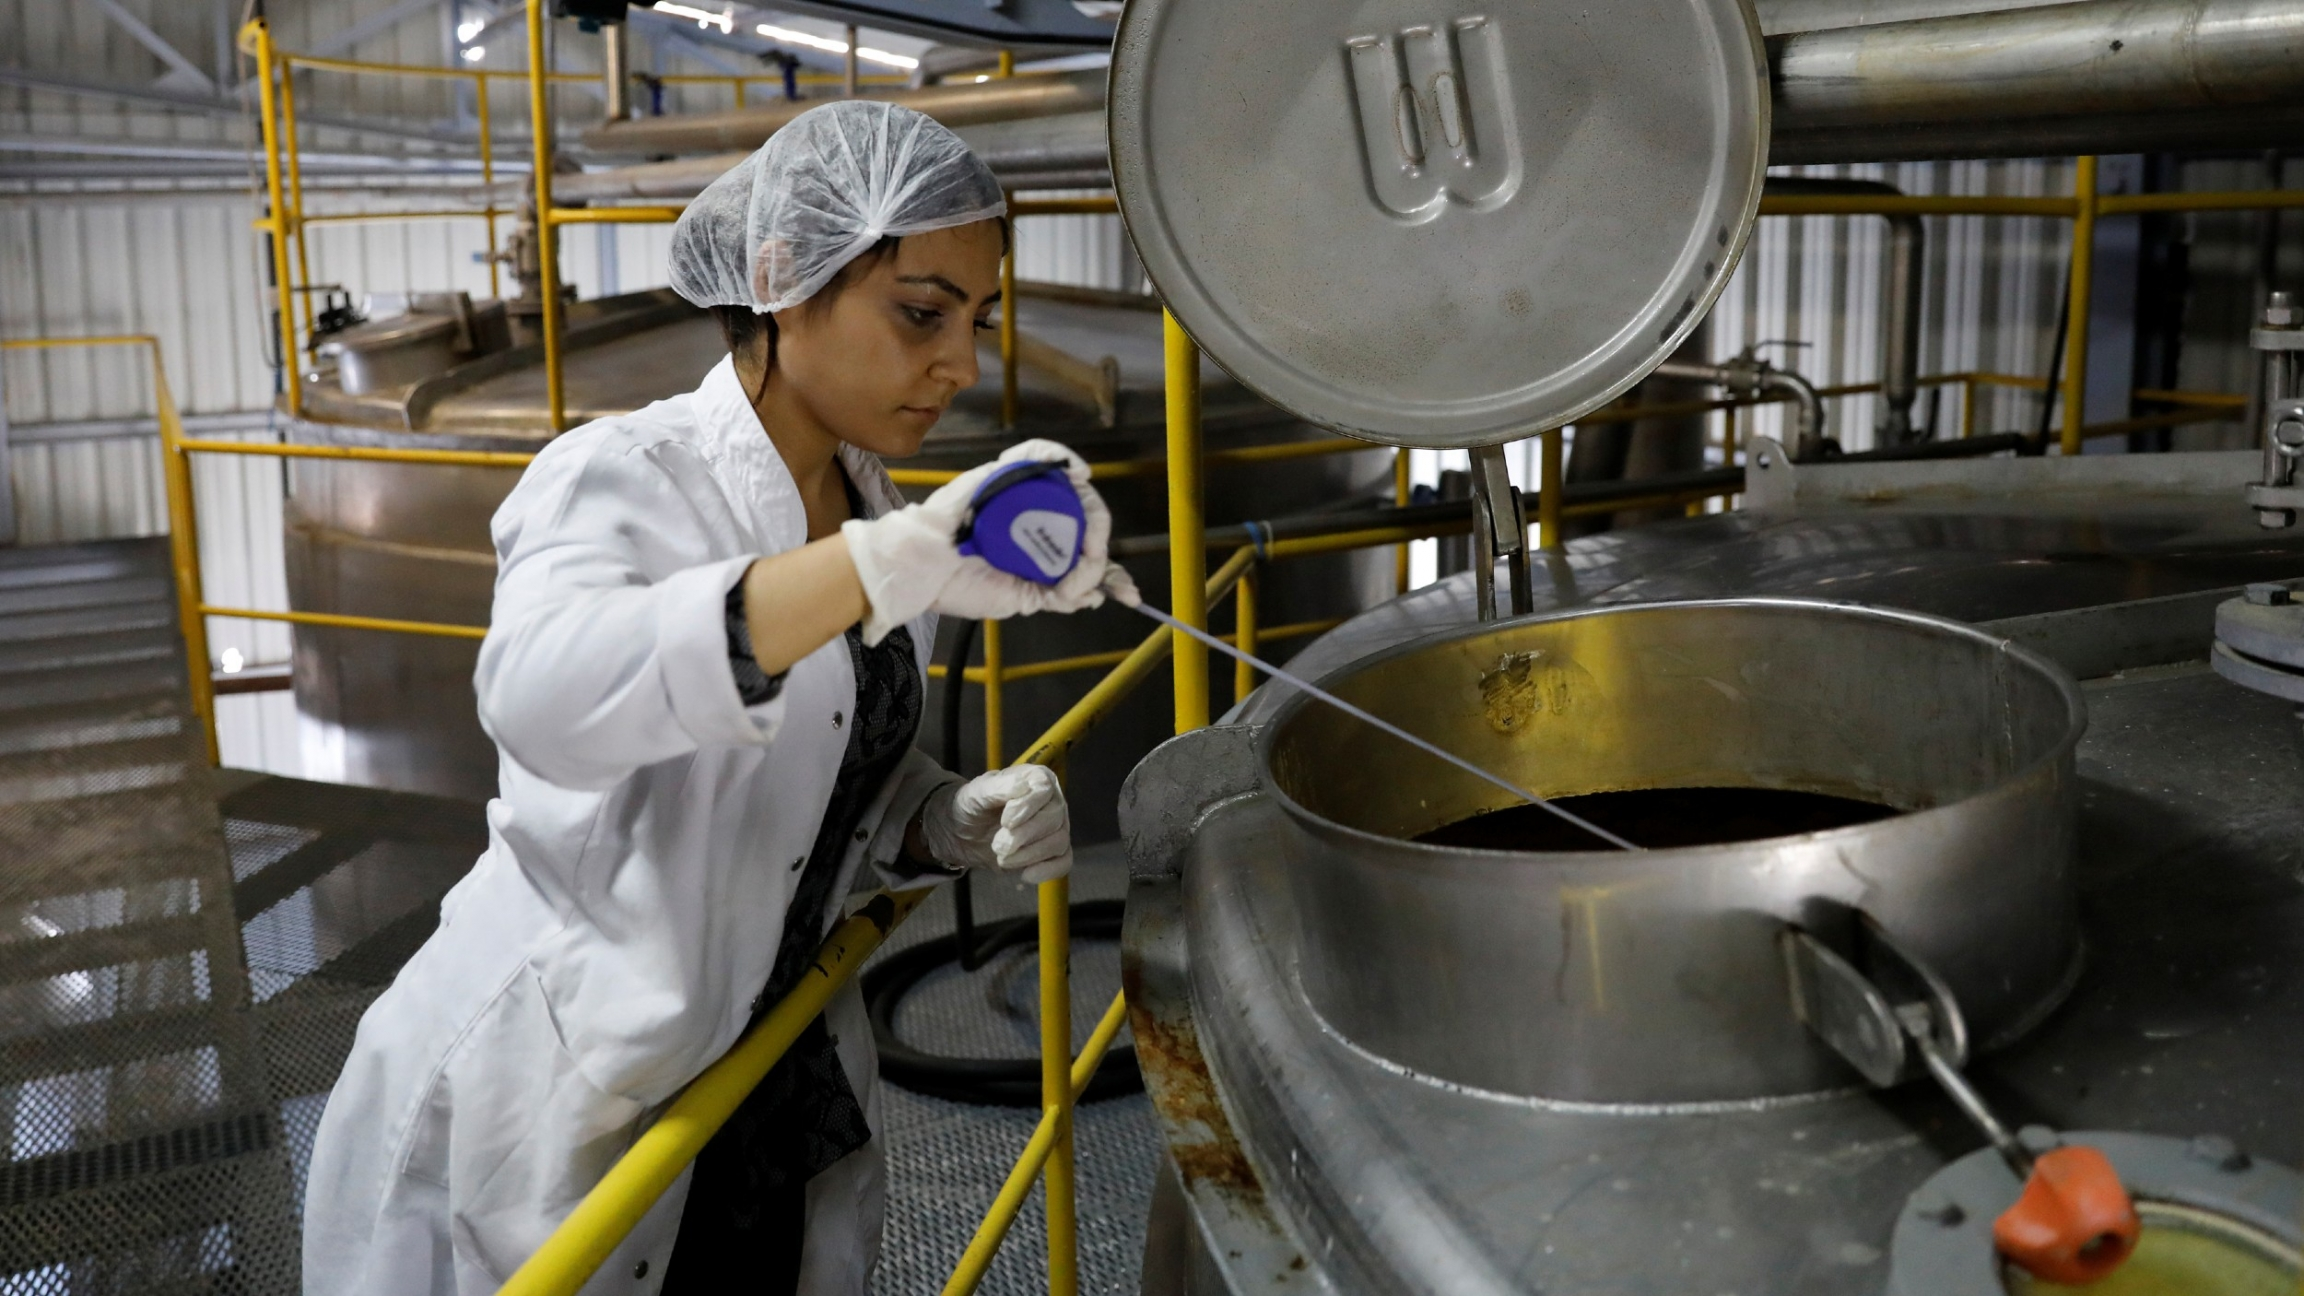 In this file photo, an employee takes a sample from a storage cylinder of Turkey's popular alcoholic drink rakı at the Infotex Alkollu Icecekler plant in the town of Dinar, Turkey, Nov. 30, 2017.